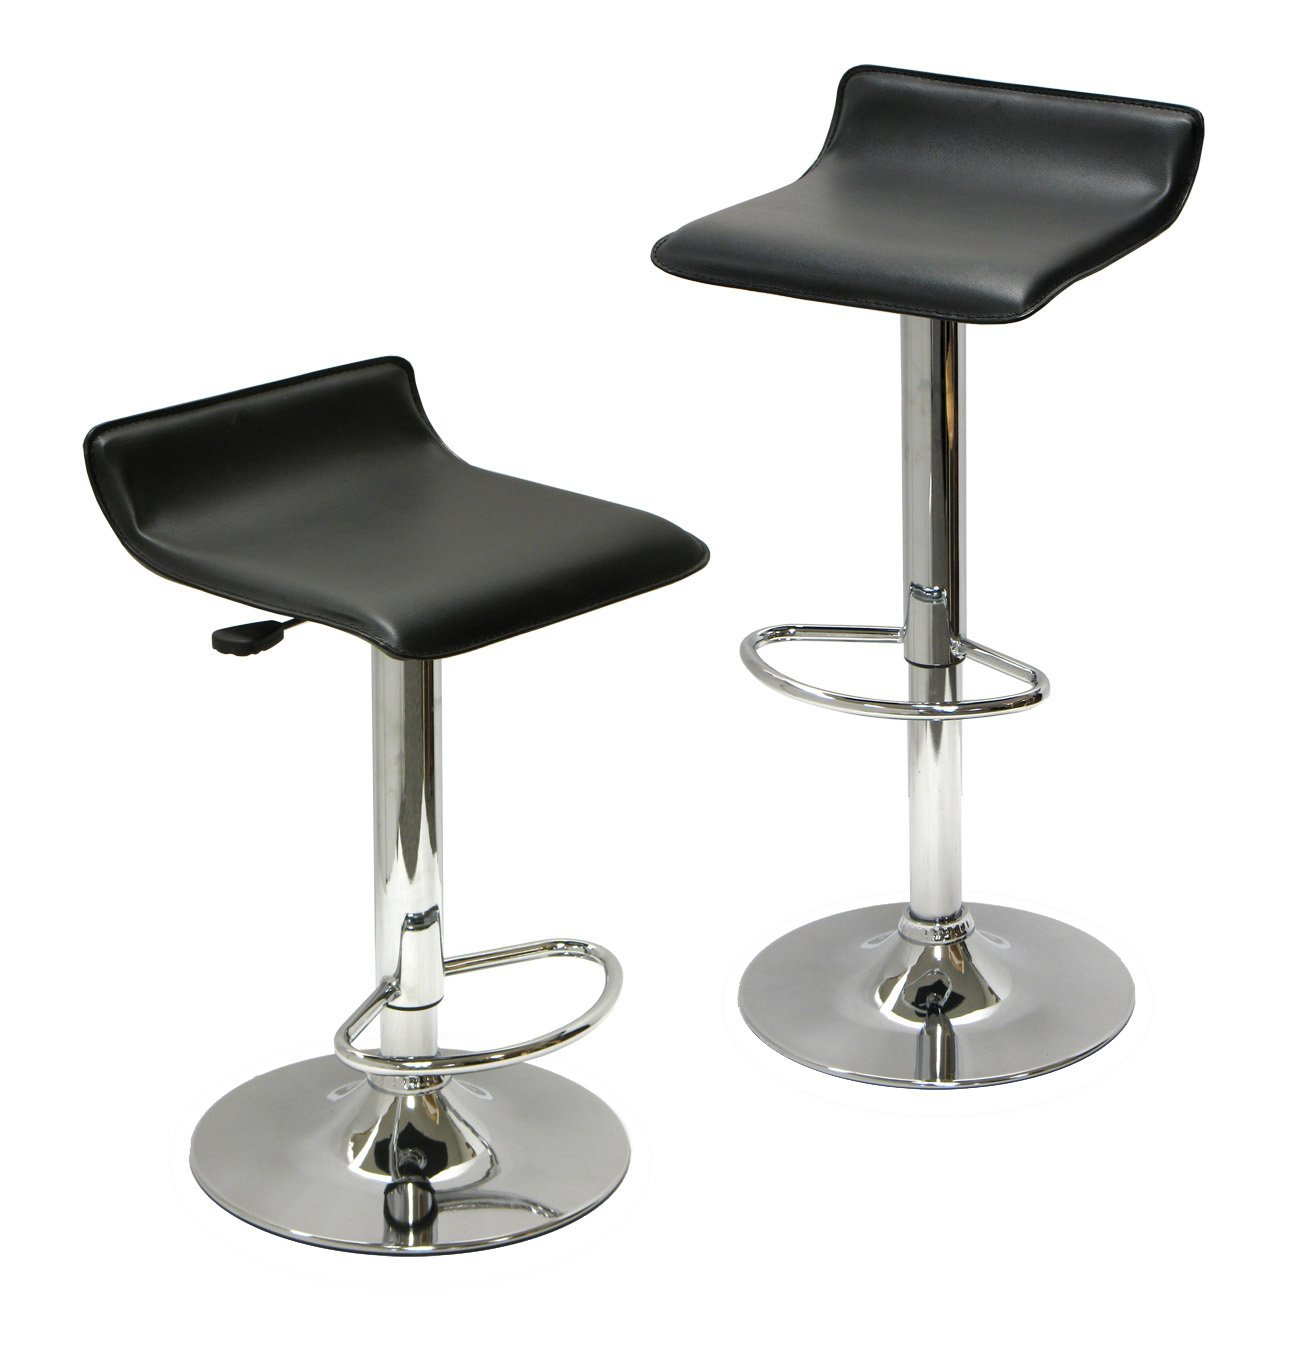 Flexible Modern Bar Stool Design With Black Leather Bolster For Seating And Backrest Less Wit